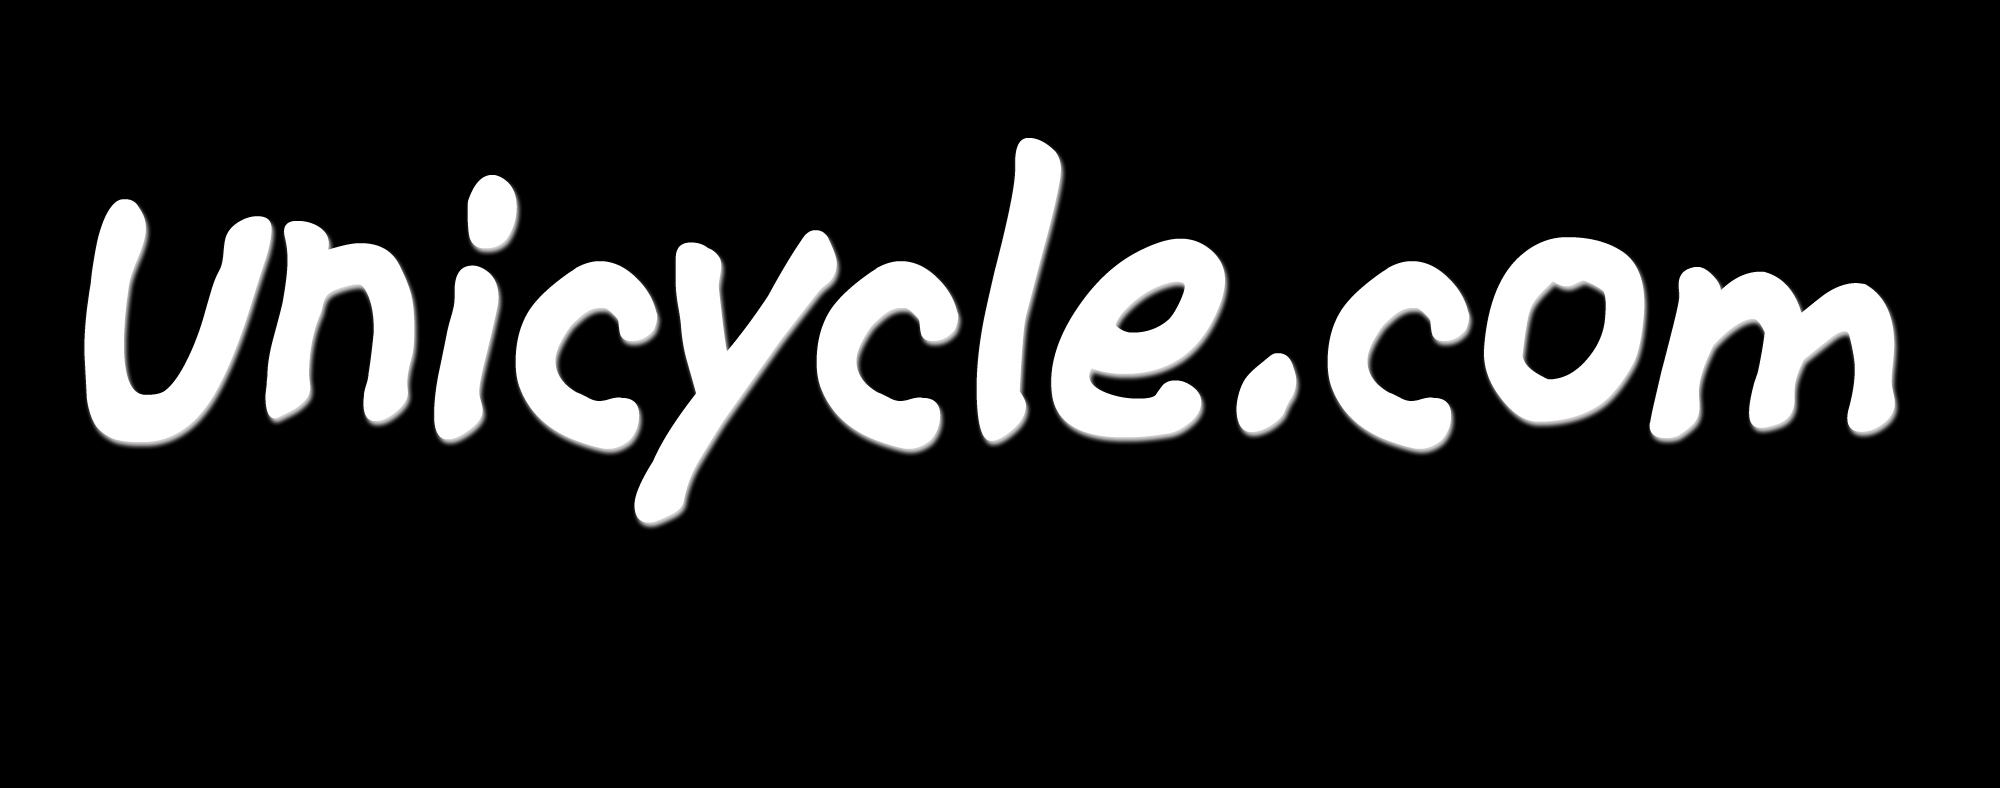 Unicycle.com